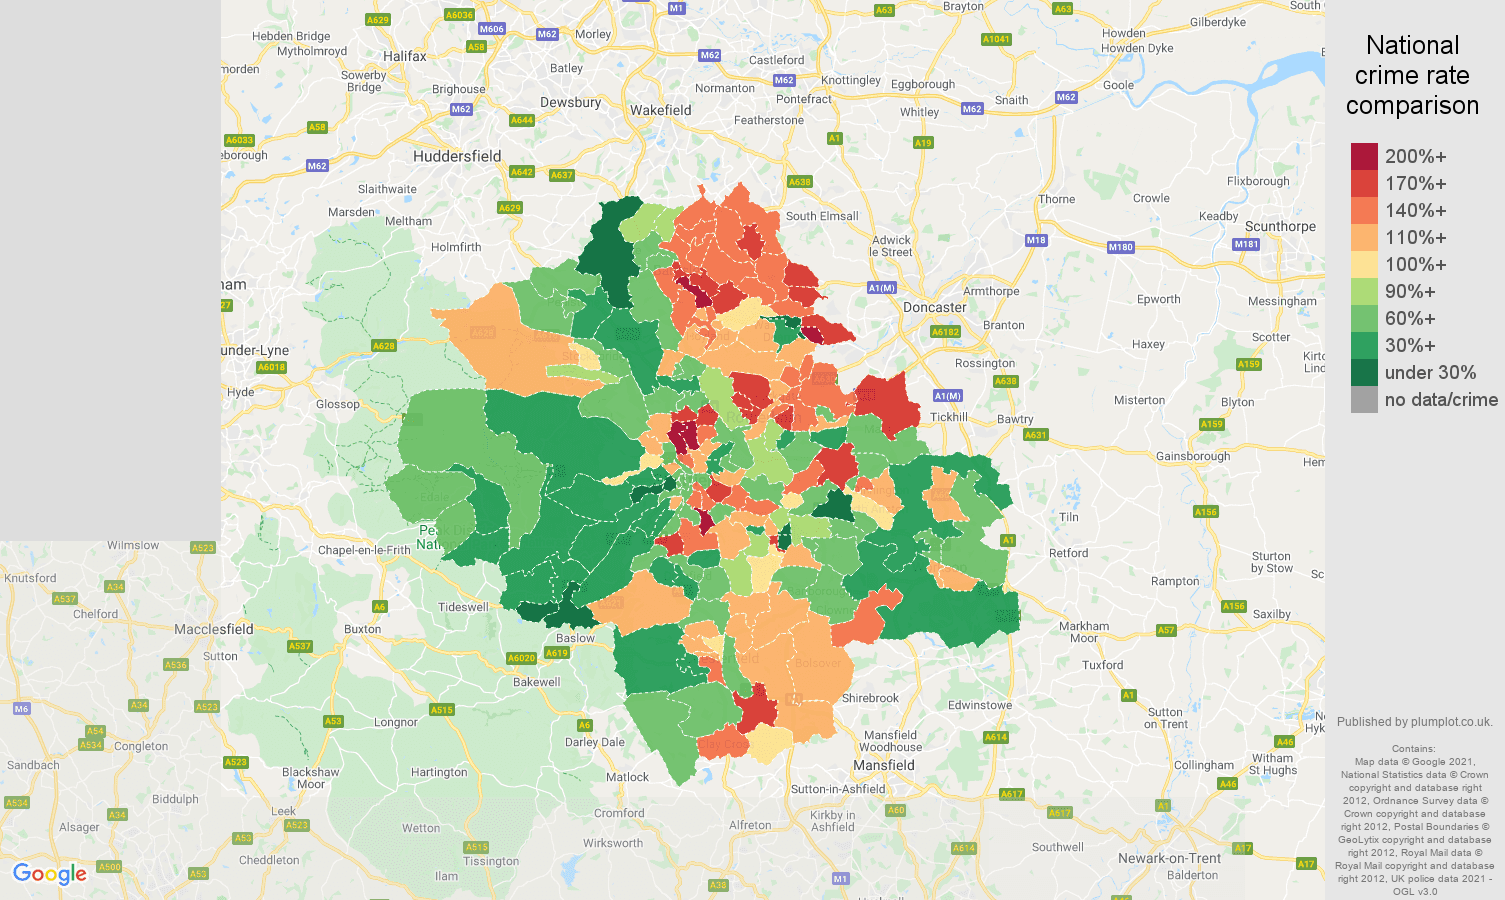 Sheffield violent crime rate comparison map